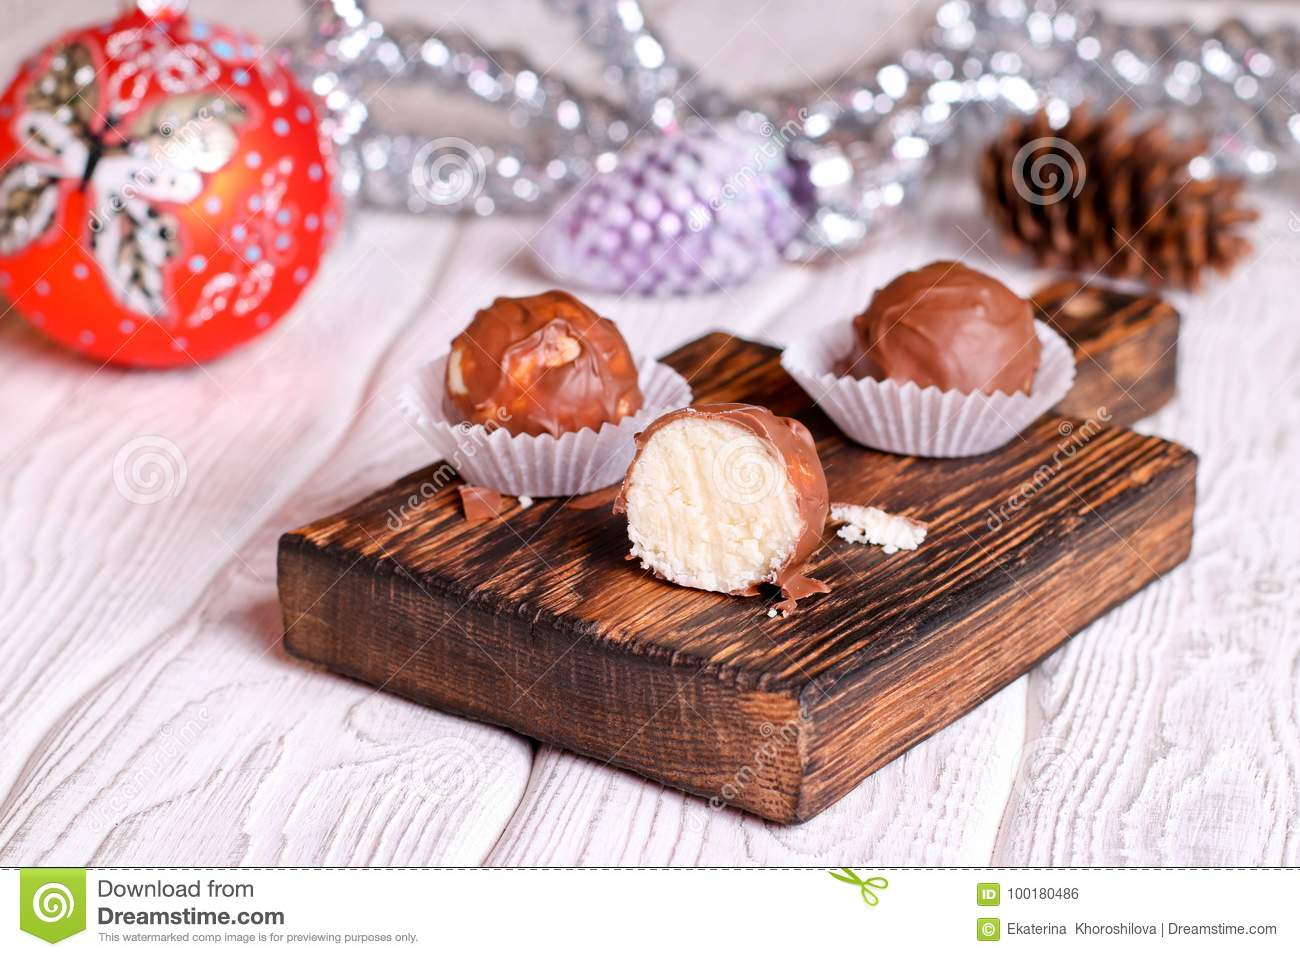 Handmade chocolate coconut candy on wooden table with Christmas